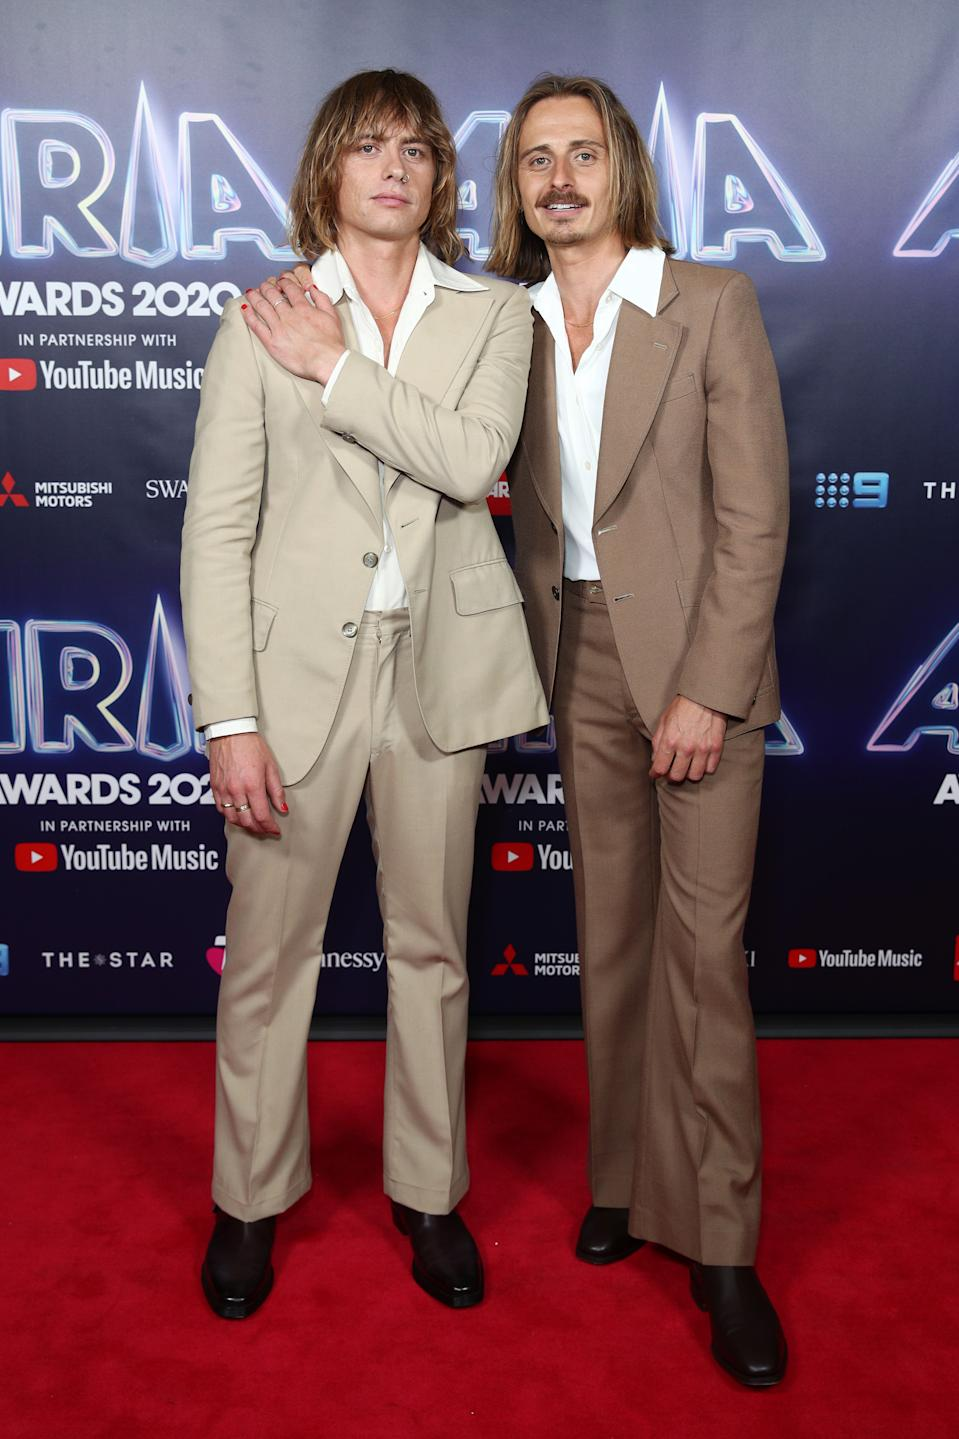 Louis Leimbach and Oliver Leimbach of Lime Cordiale wear brown seventies suits on the red carpet at the 2020 ARIA Awards at The Star on November 24, 2020 in Sydney, Australia.